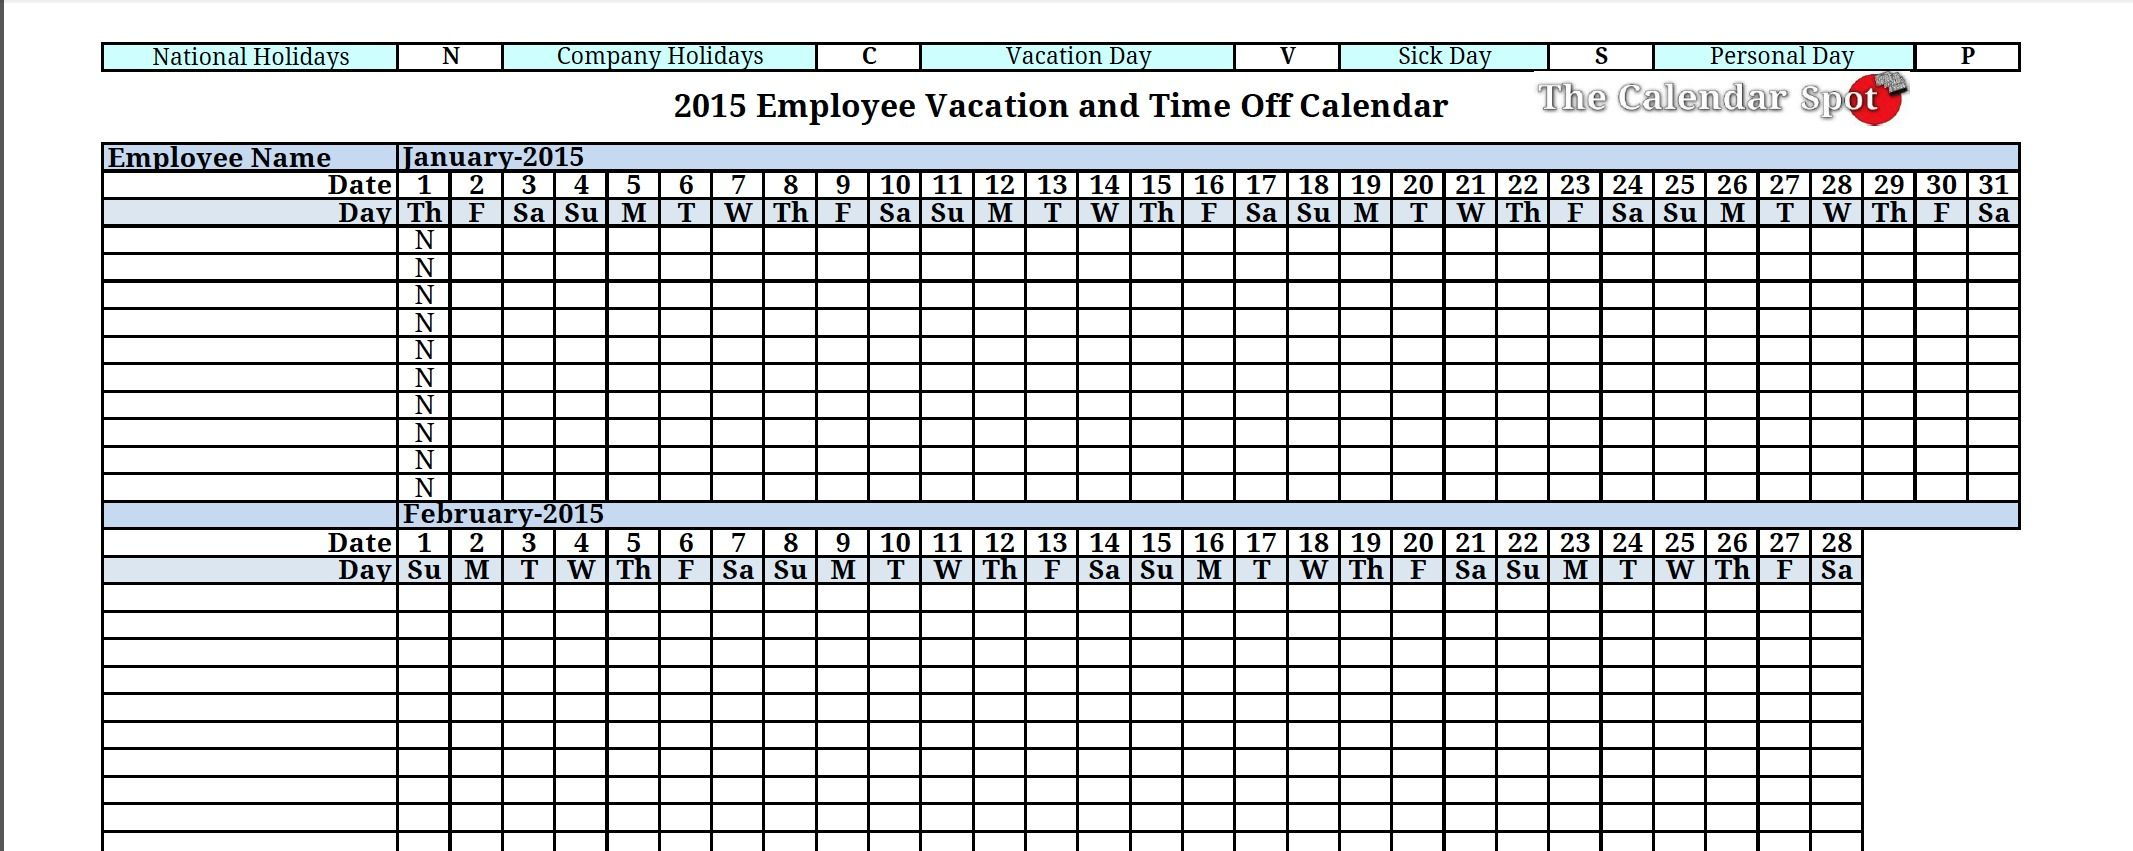 2015 Employee Vacation Absence Tracking Calendar | Vacation throughout Employee Vacation Calendar Template